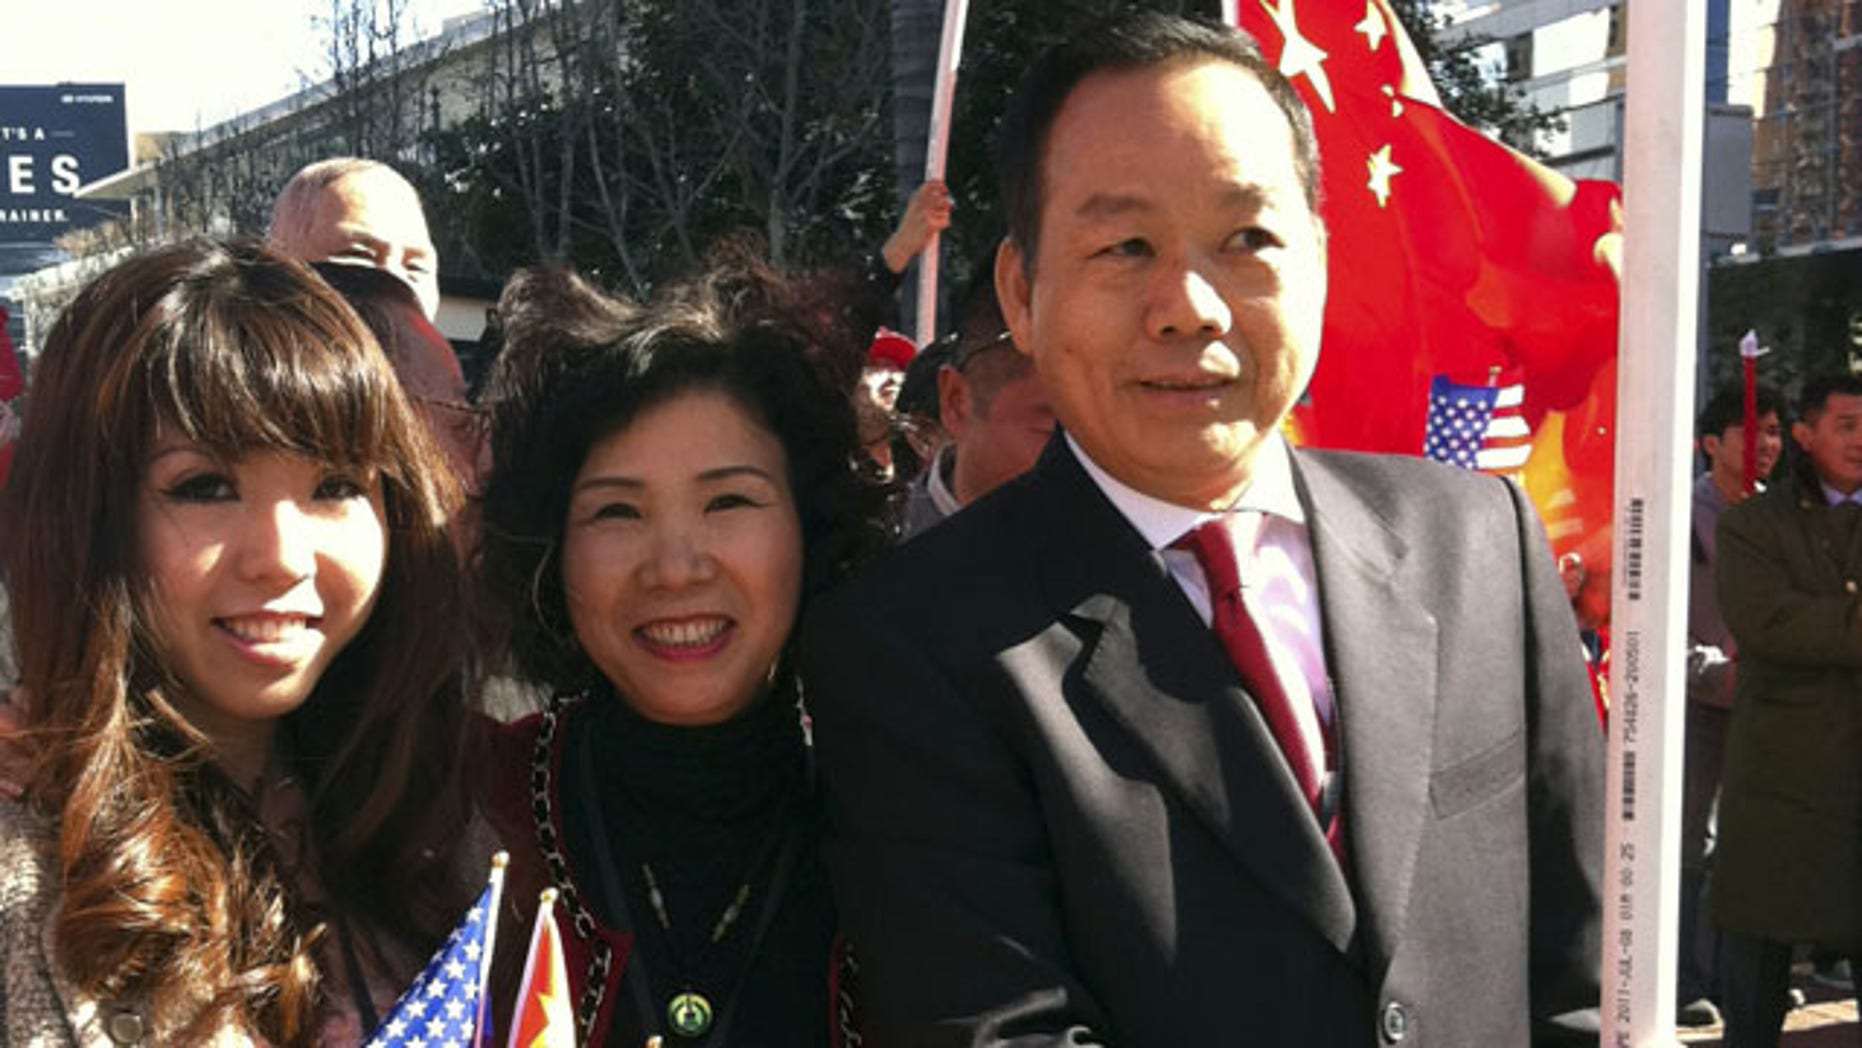 FILE - In this Feb. 16, 2012 file photo released by Anna Wu, American businessman Vincent Wu, right, poses for a photo with his wife Yip Lai Fong, center, and daughter Anna Wu as they wait to welcome China's then-Vice President Xi Jinping on his visit to Los Angeles, Calif. (AP)